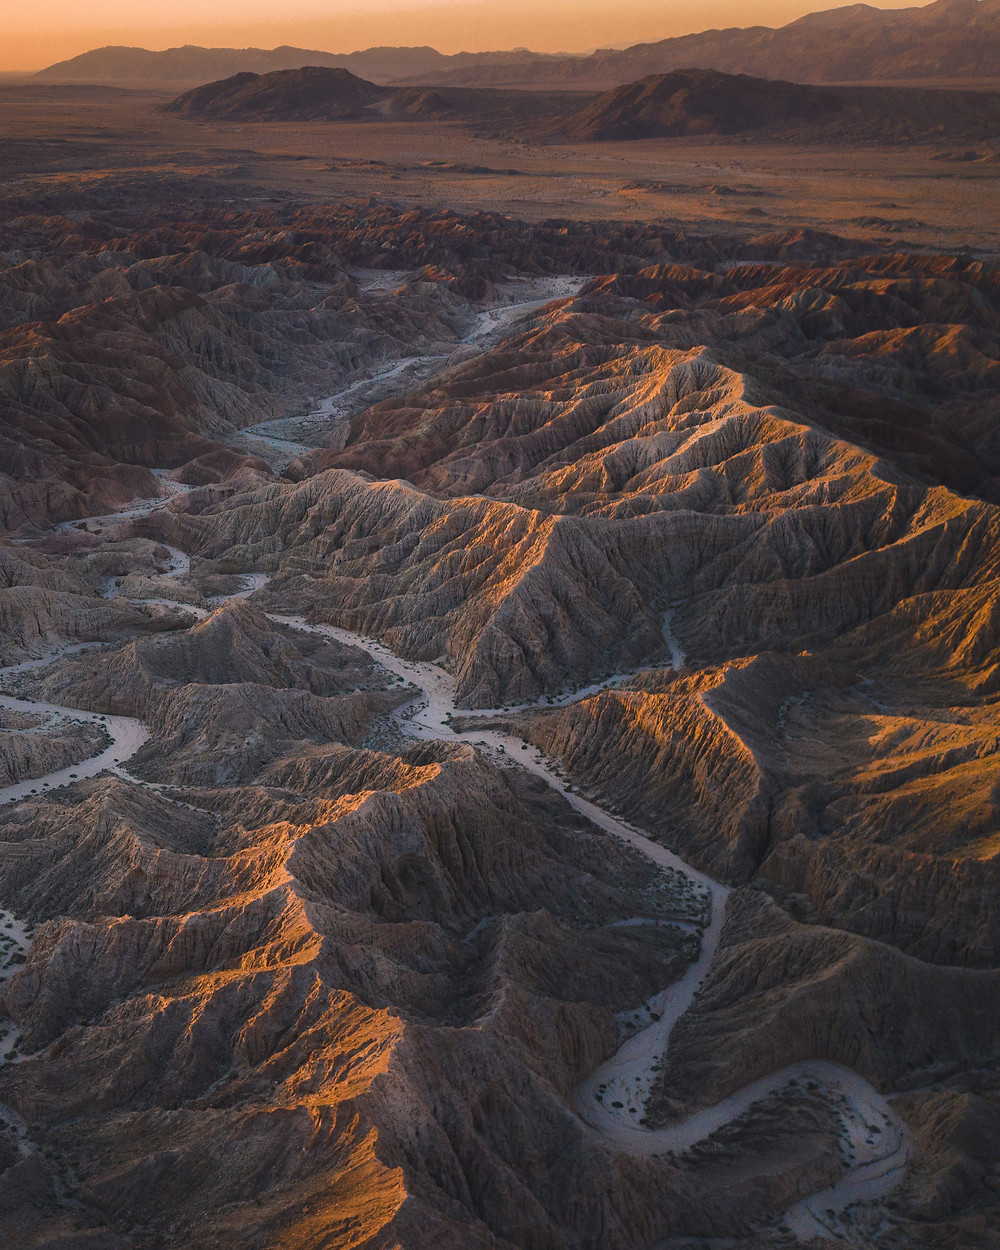 Aerial view of the badlands in California